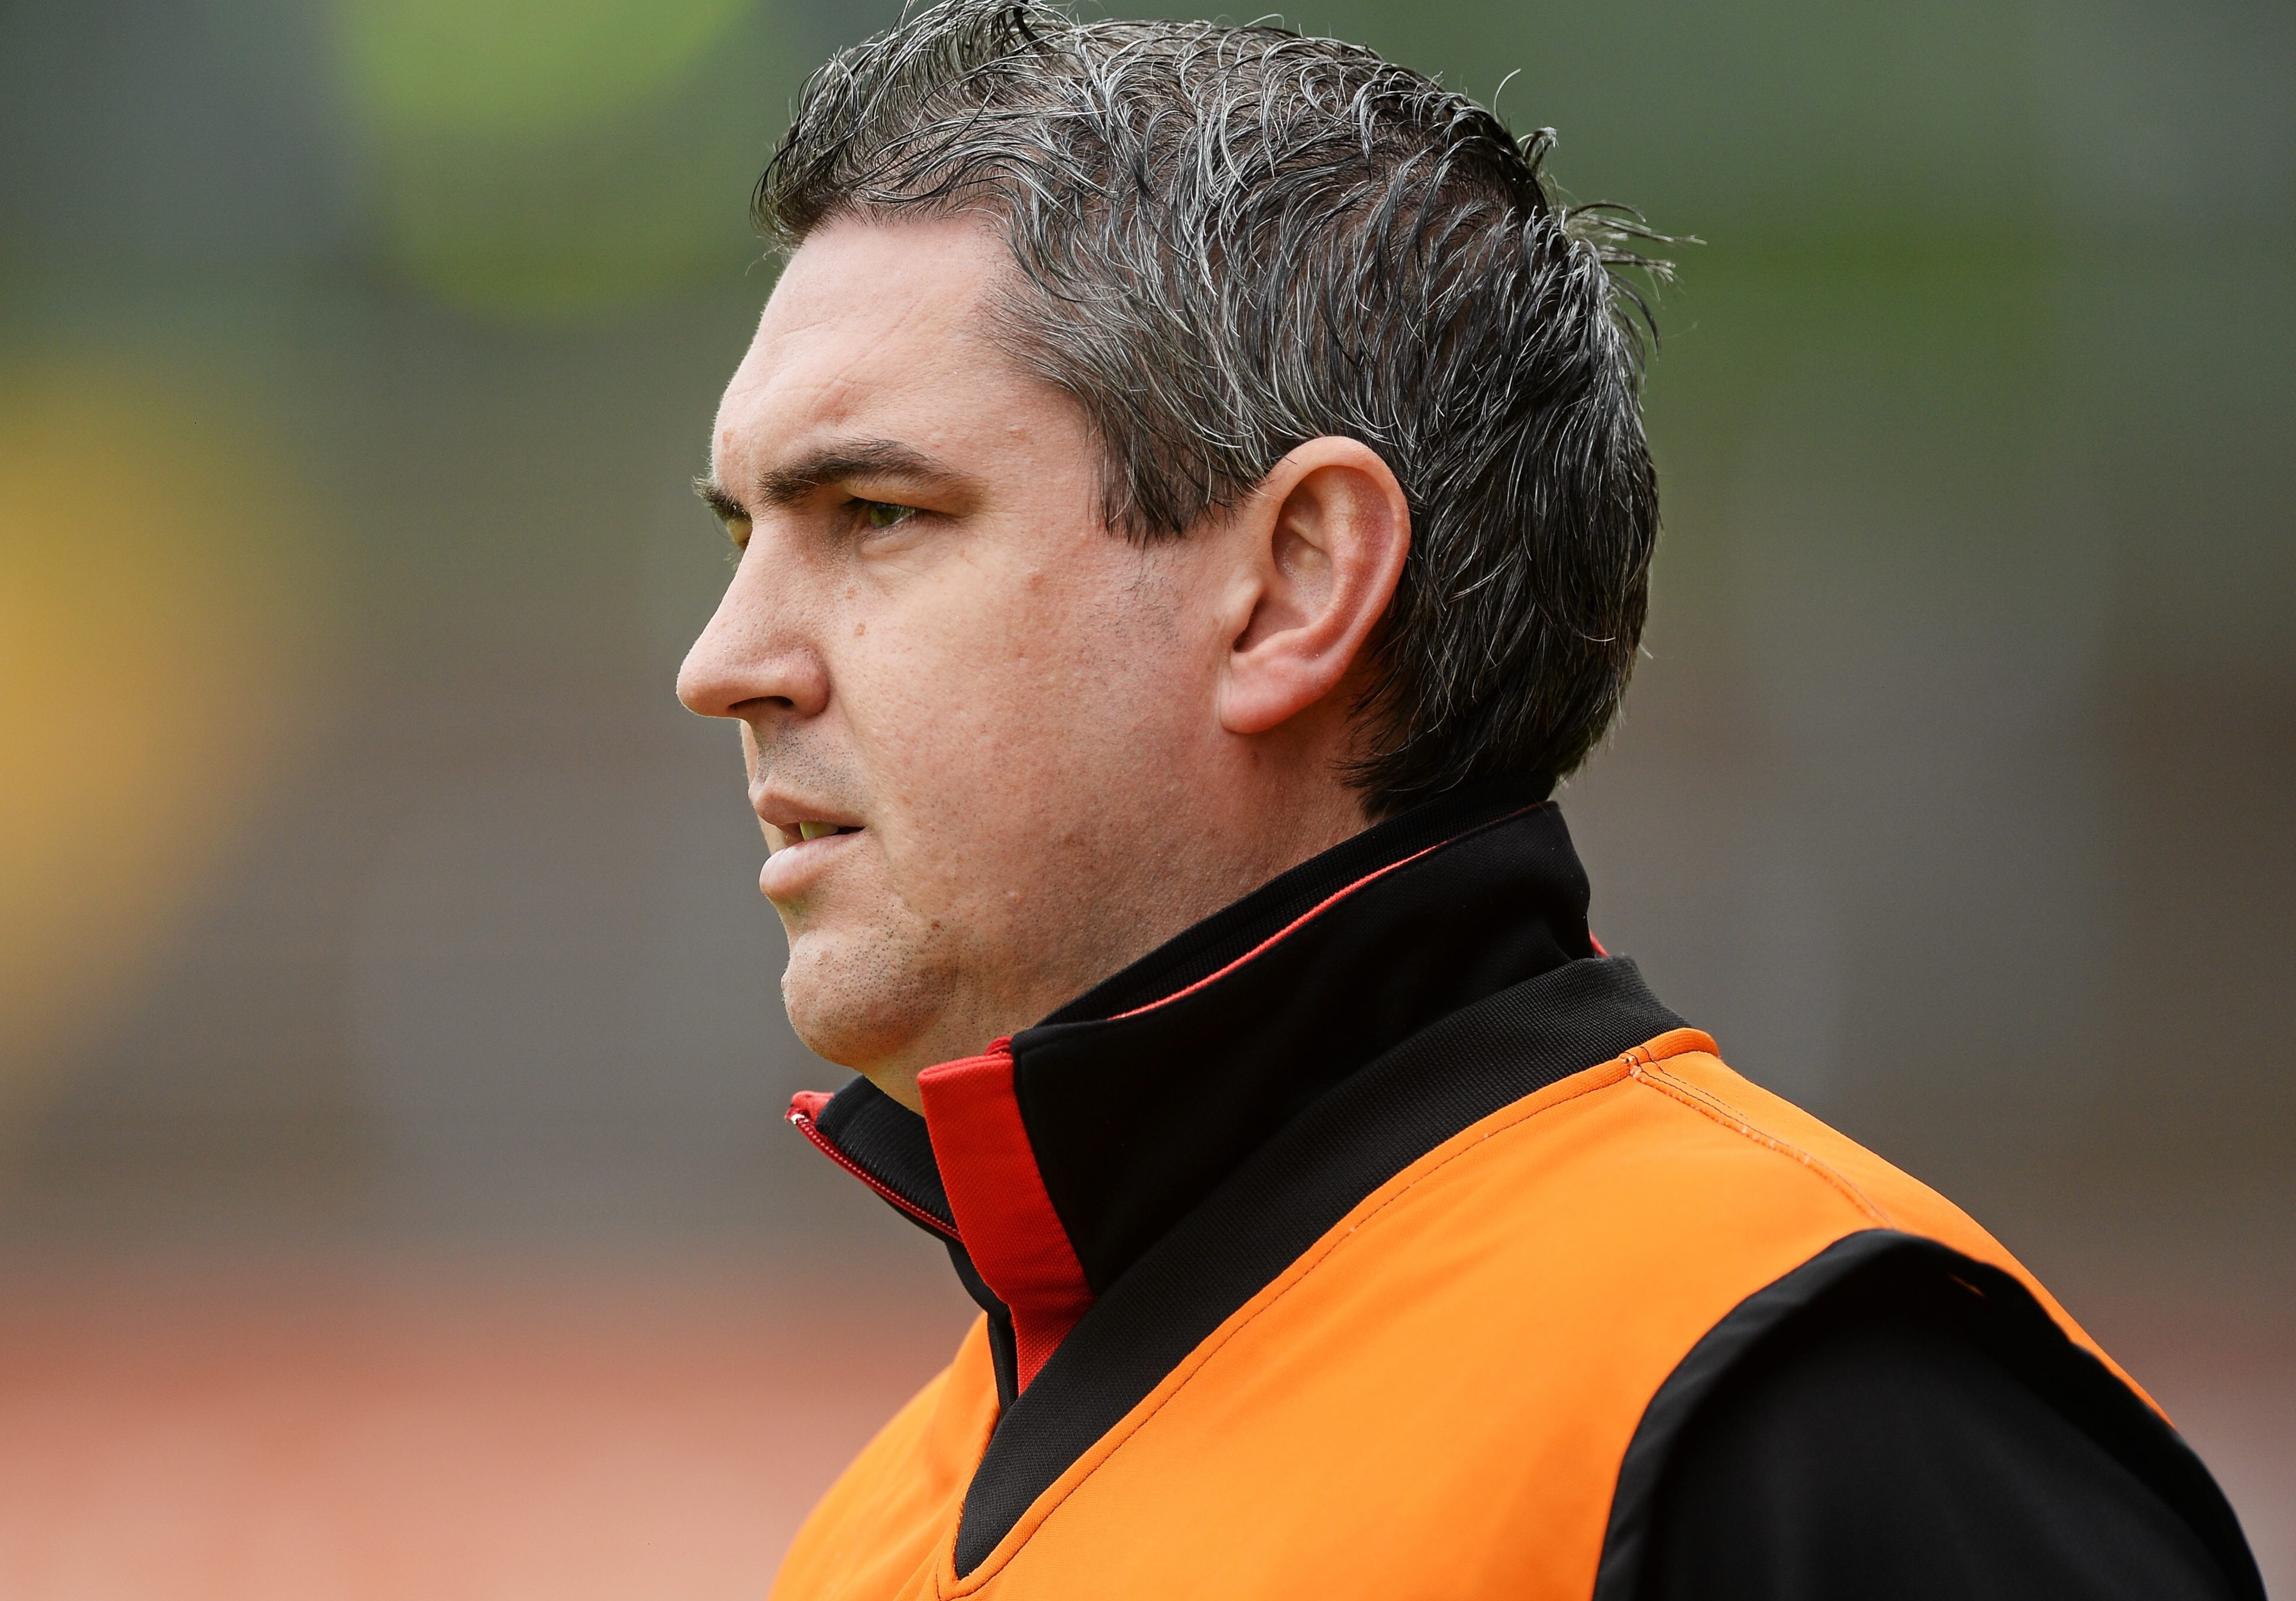 Queen's GAA Appoint Mulholland as Head Coach